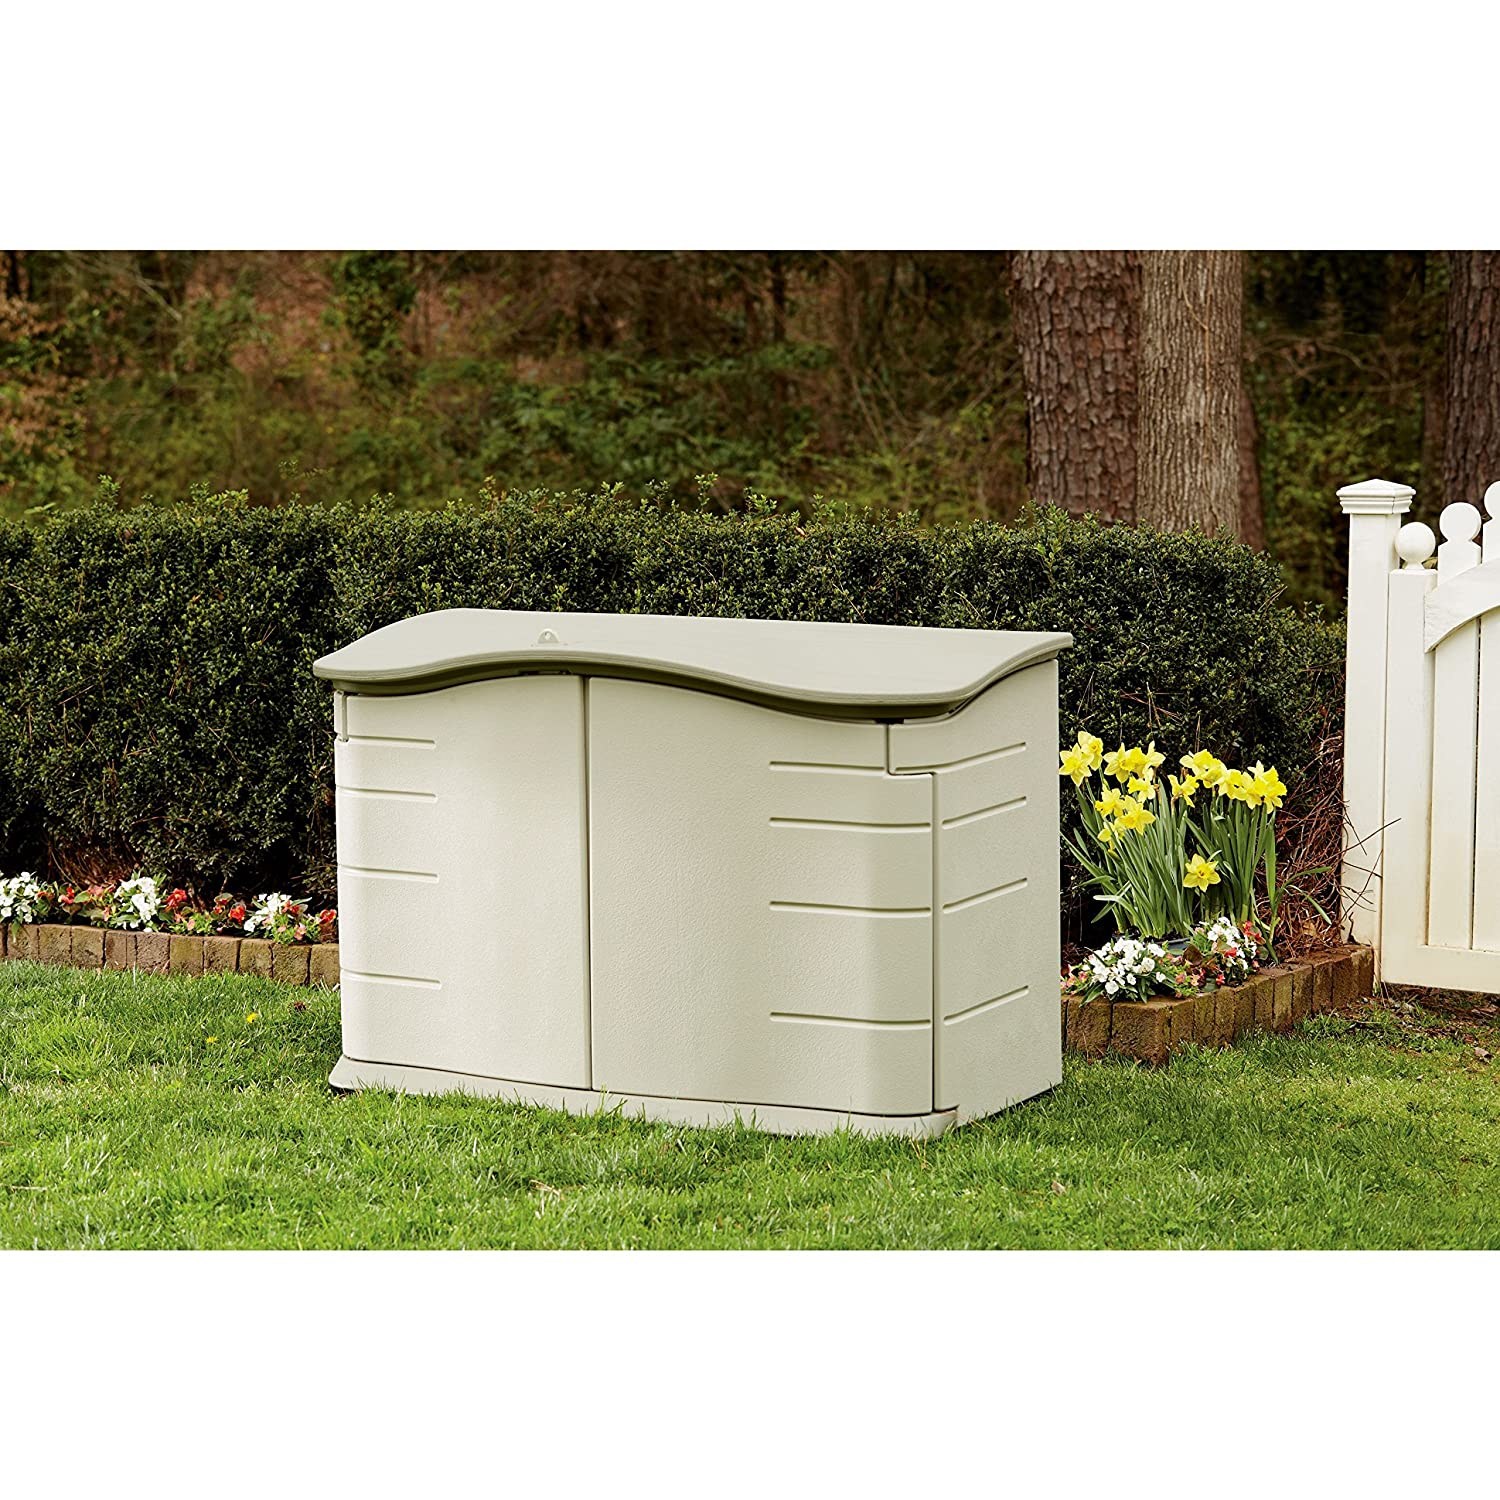 Merveilleux Amazon.com : Rubbermaid Horizontal Storage Shed, FG374801OLVSS : Garden U0026  Outdoor